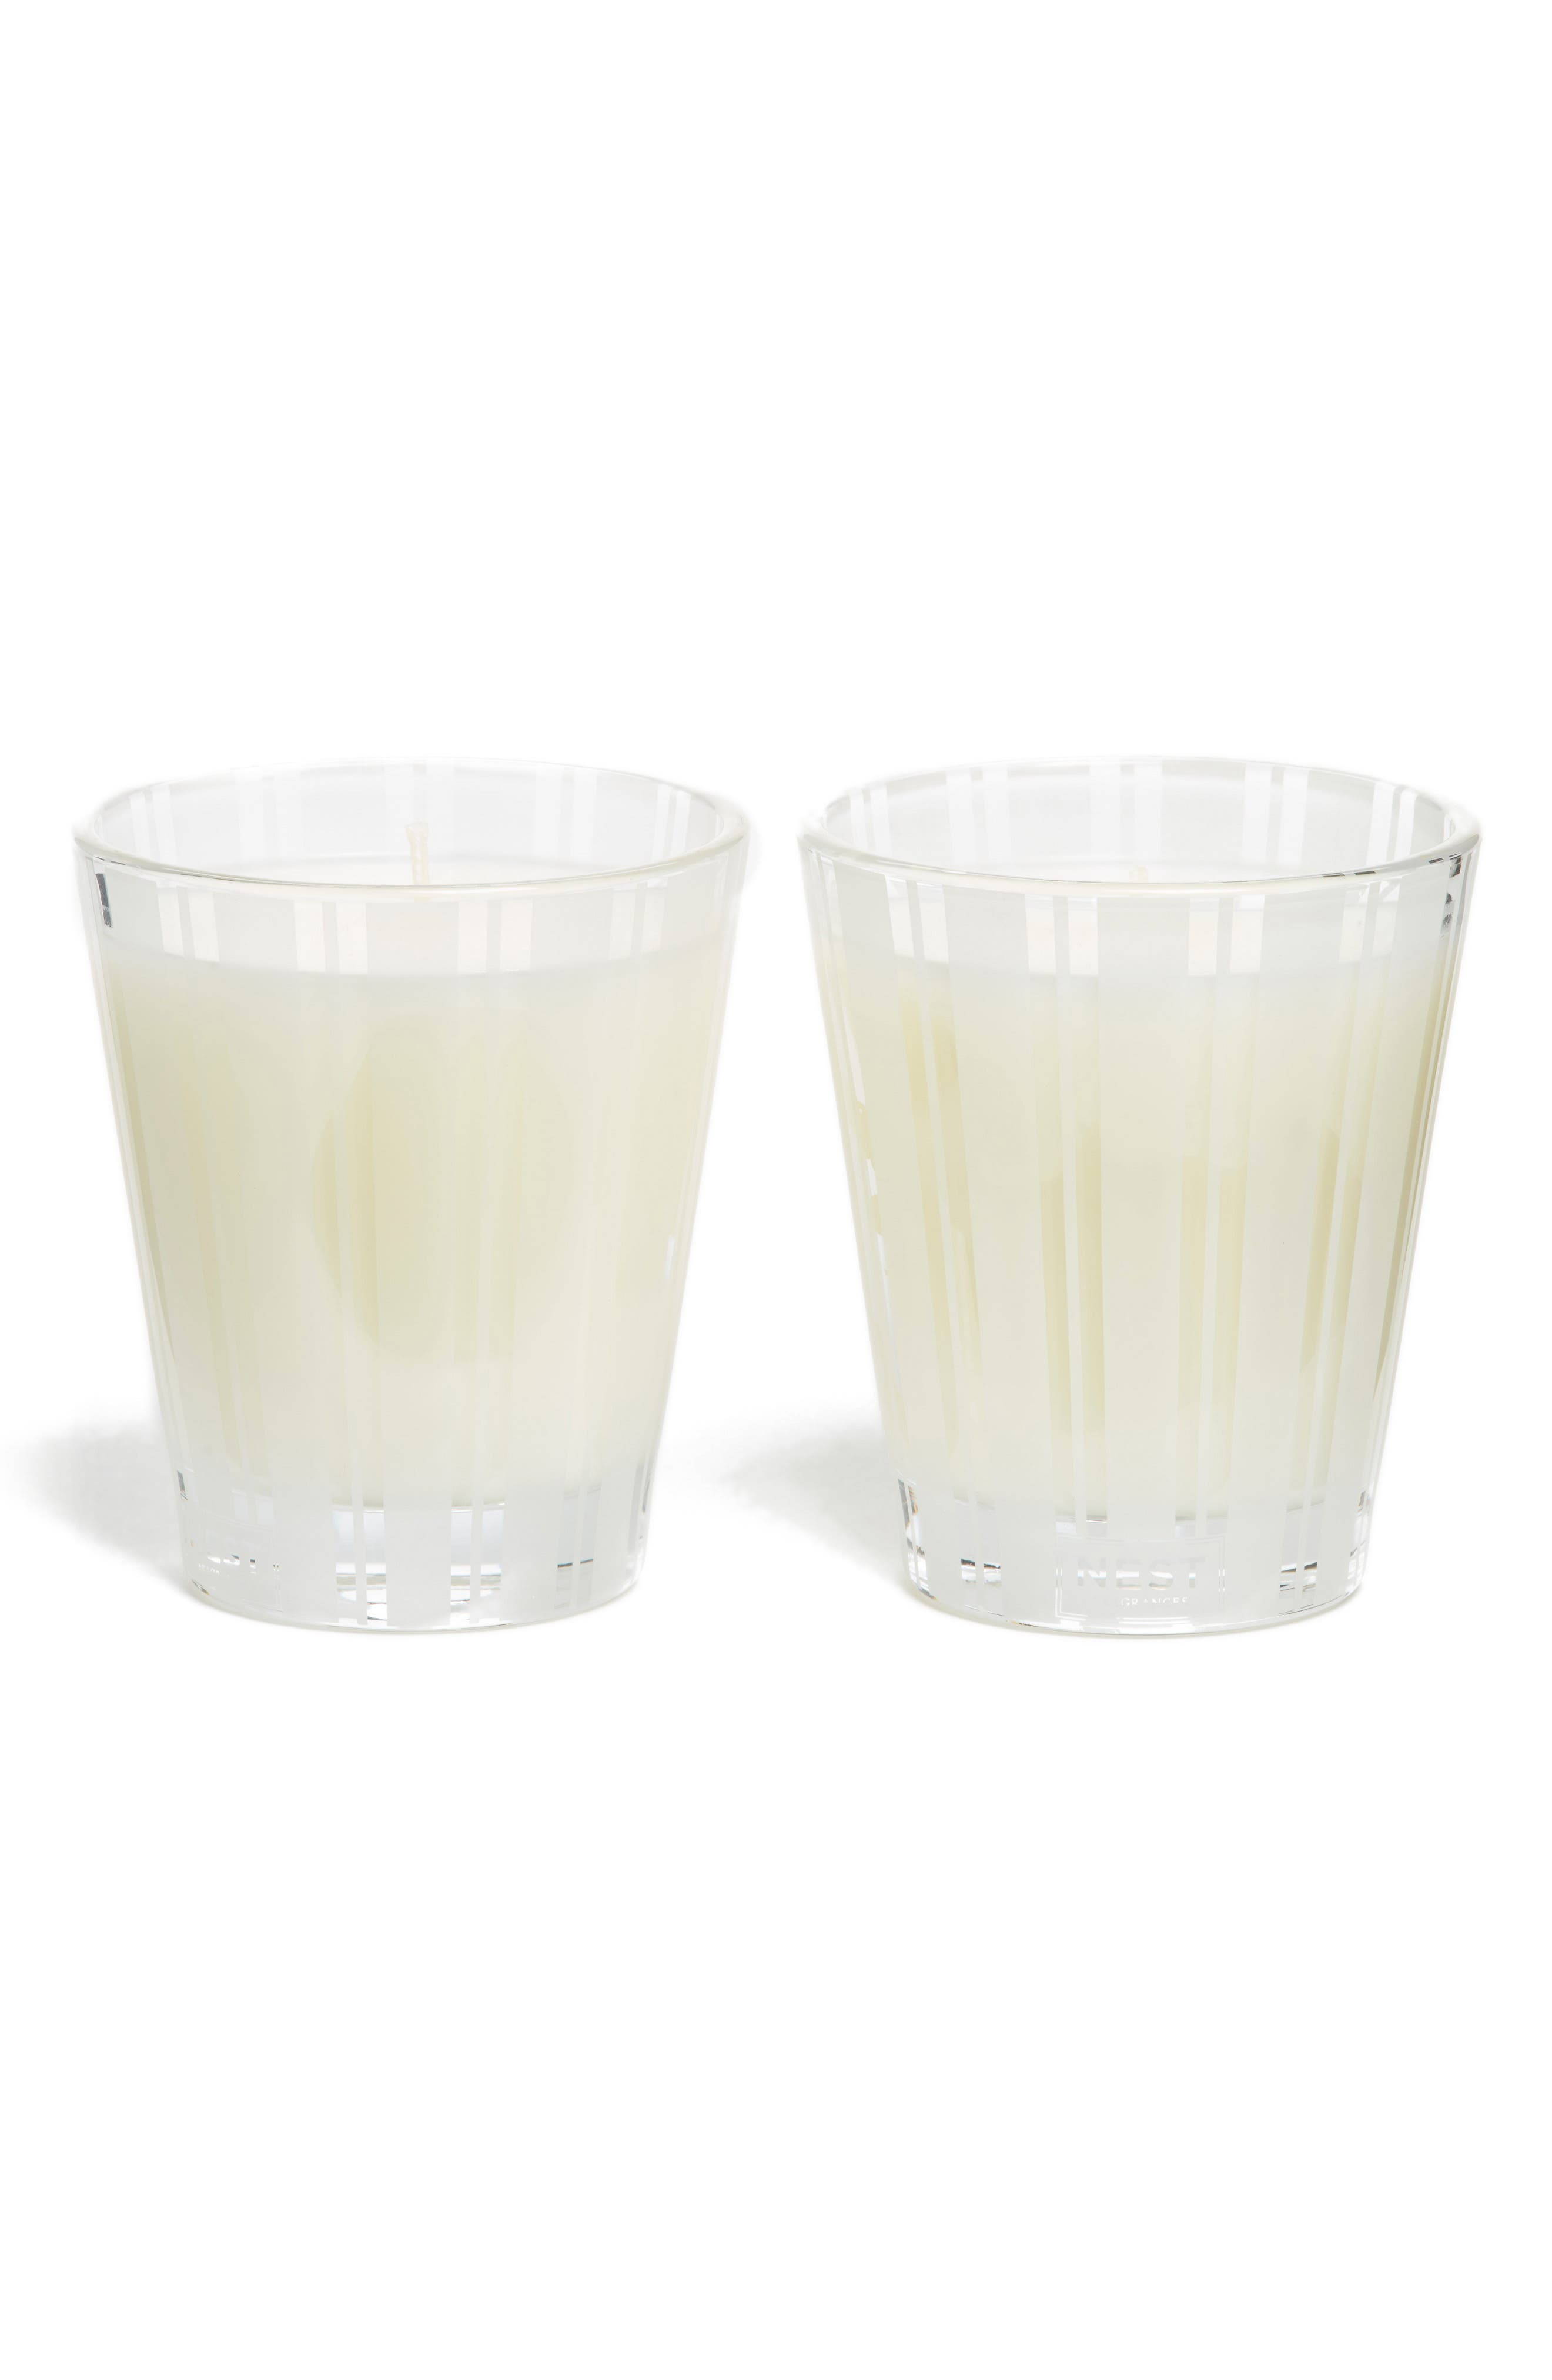 Grapefruit Scented Candle Duo,                             Main thumbnail 1, color,                             000